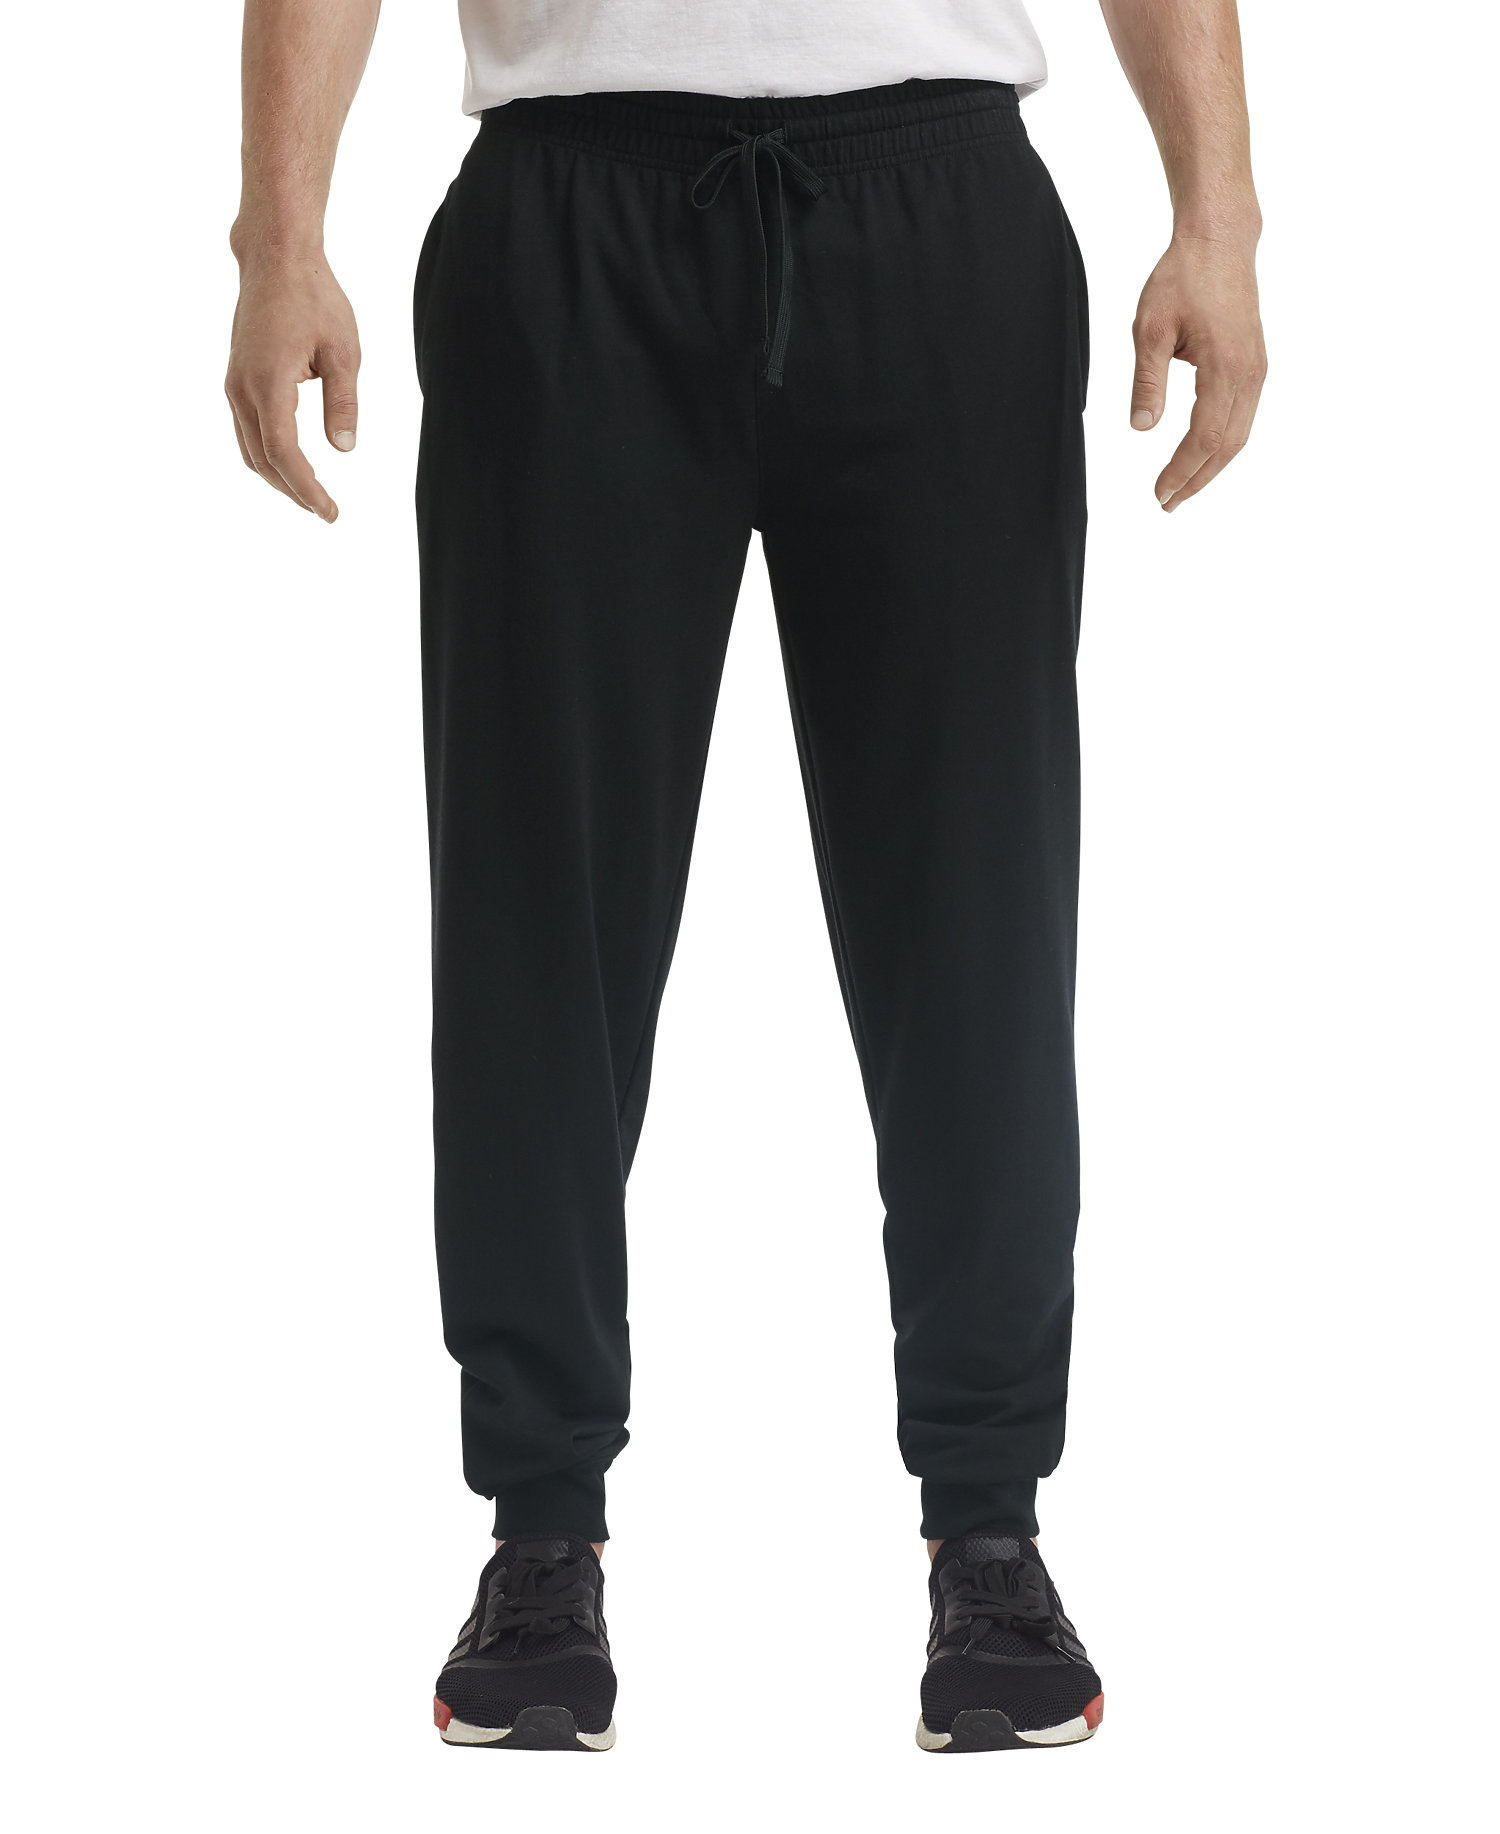 Anvil 73120 - French Terry Unisex Joggers